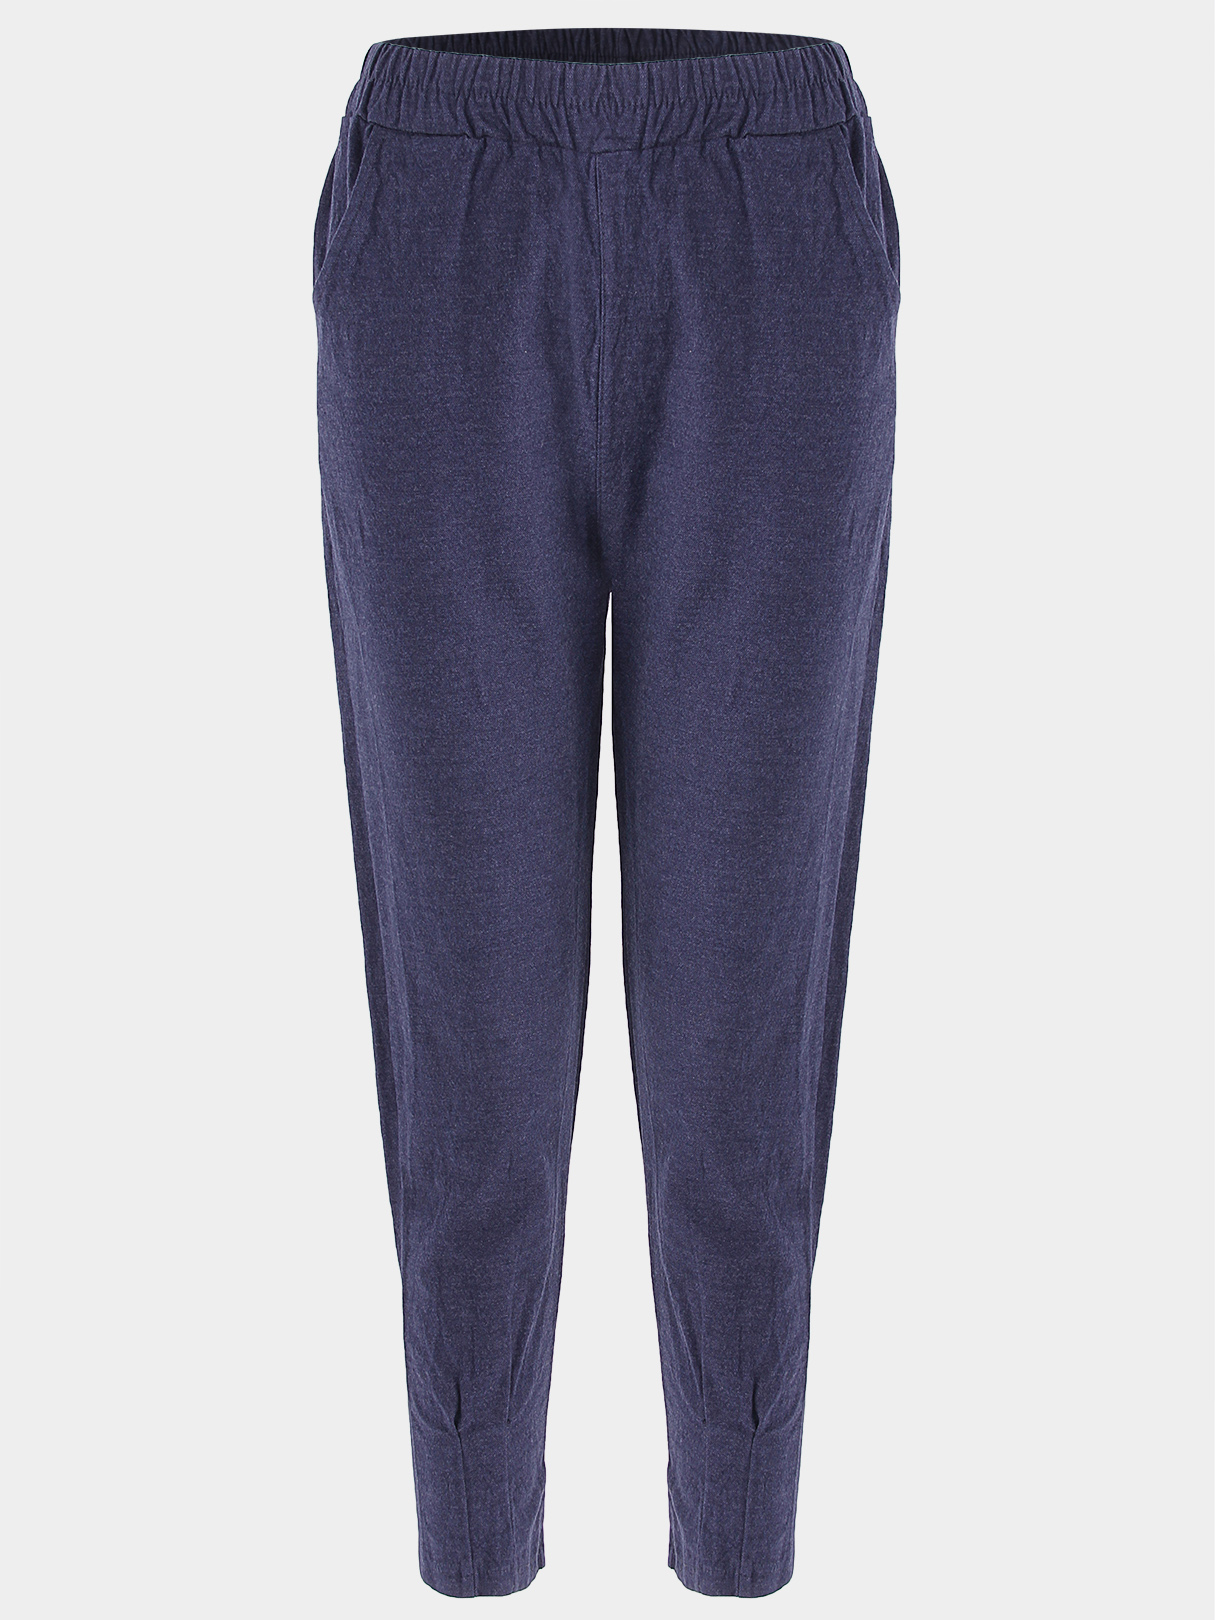 Фото Navy High-rise Two Side Pockets Drainpipe Jeans